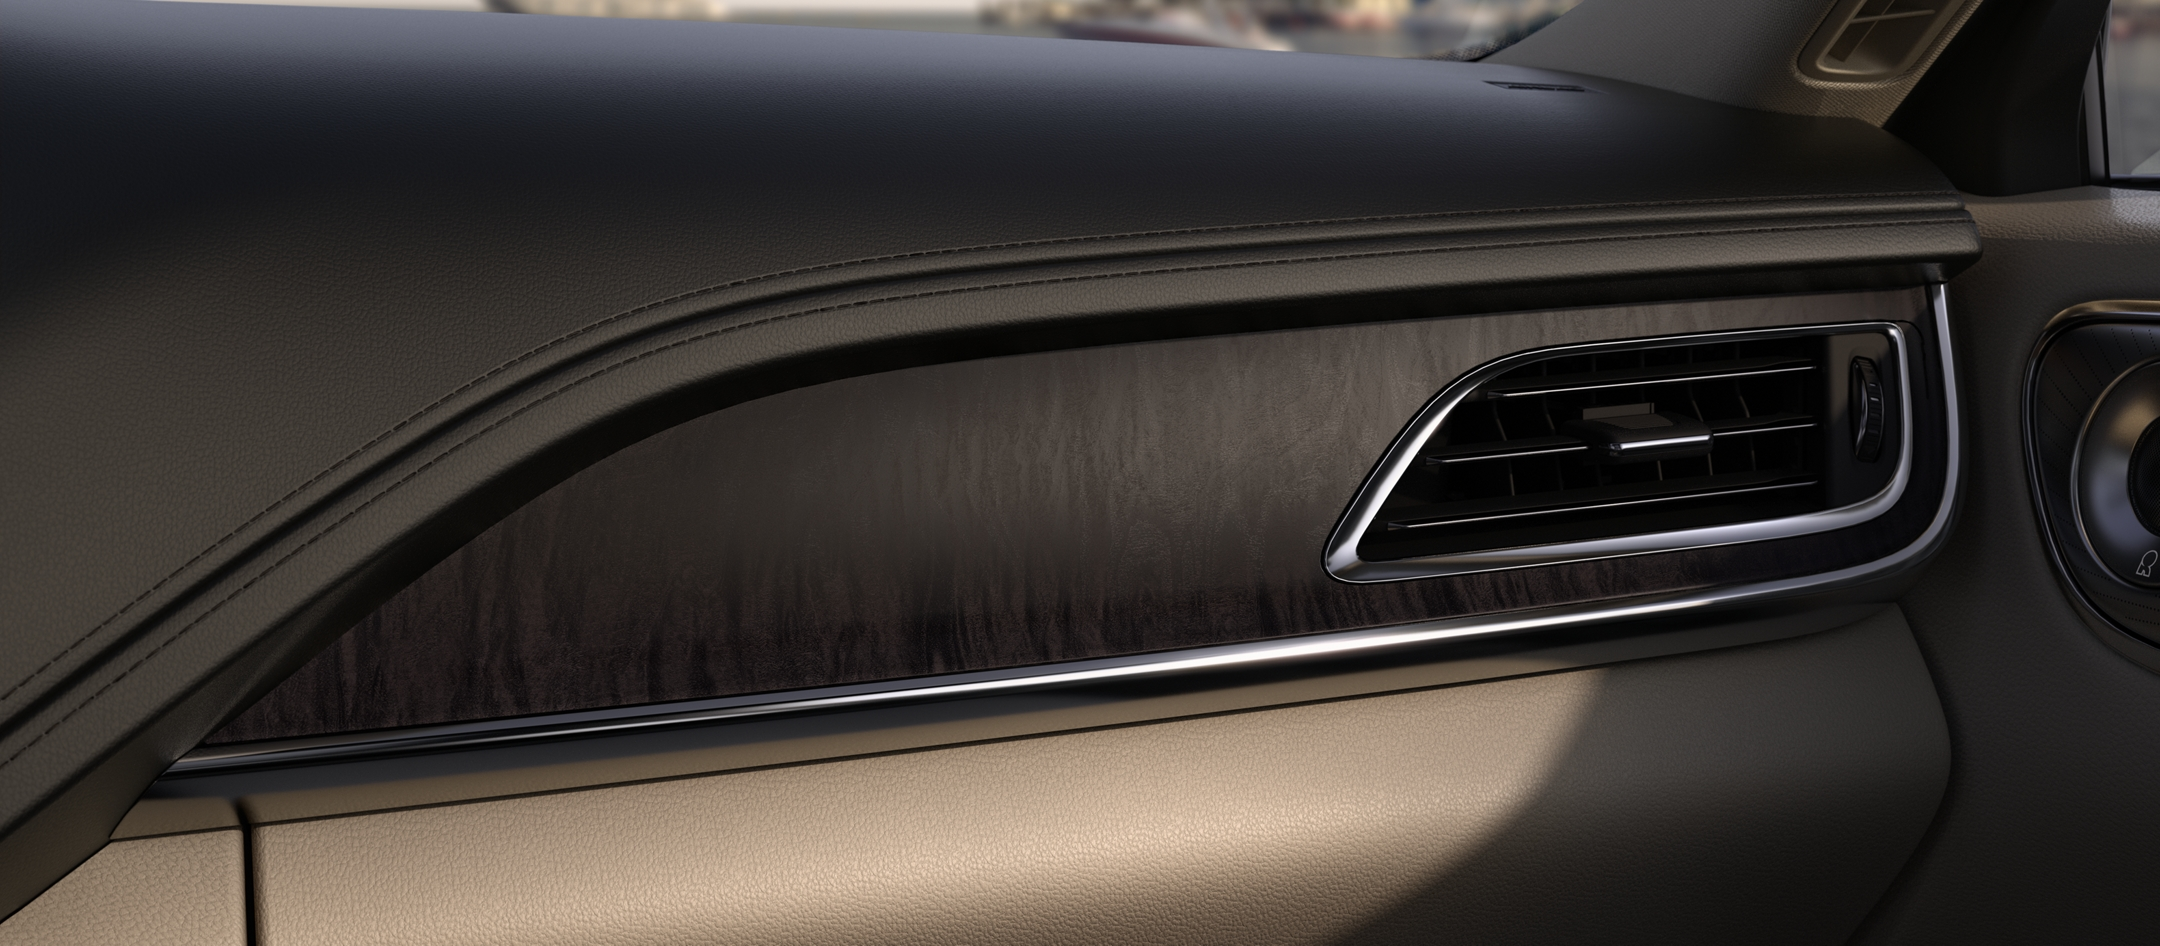 Espresso Ash Swirl wood appliques adorn the dash and other points throughout the cabin